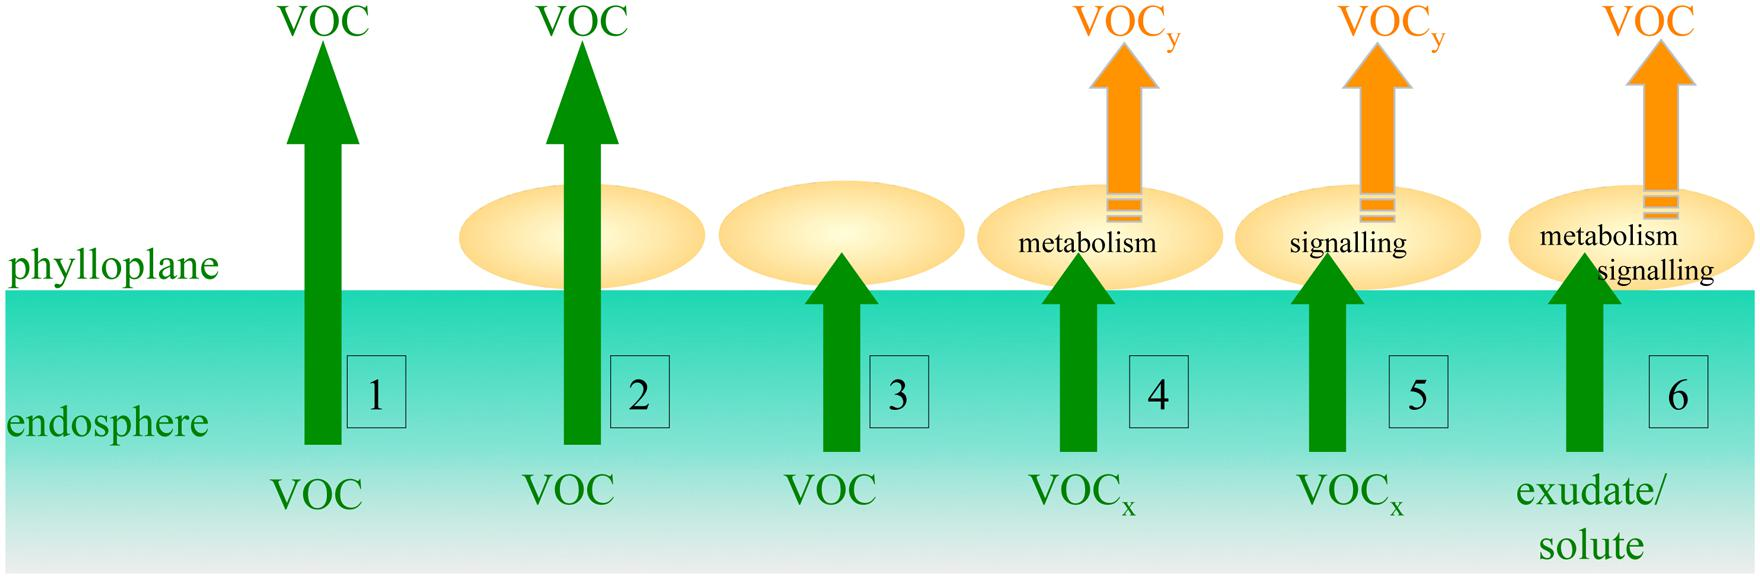 Frontiers Pivotal Roles Of Phyllosphere Microorganisms At The Based On Simple Circuit V1 By Amcmanus